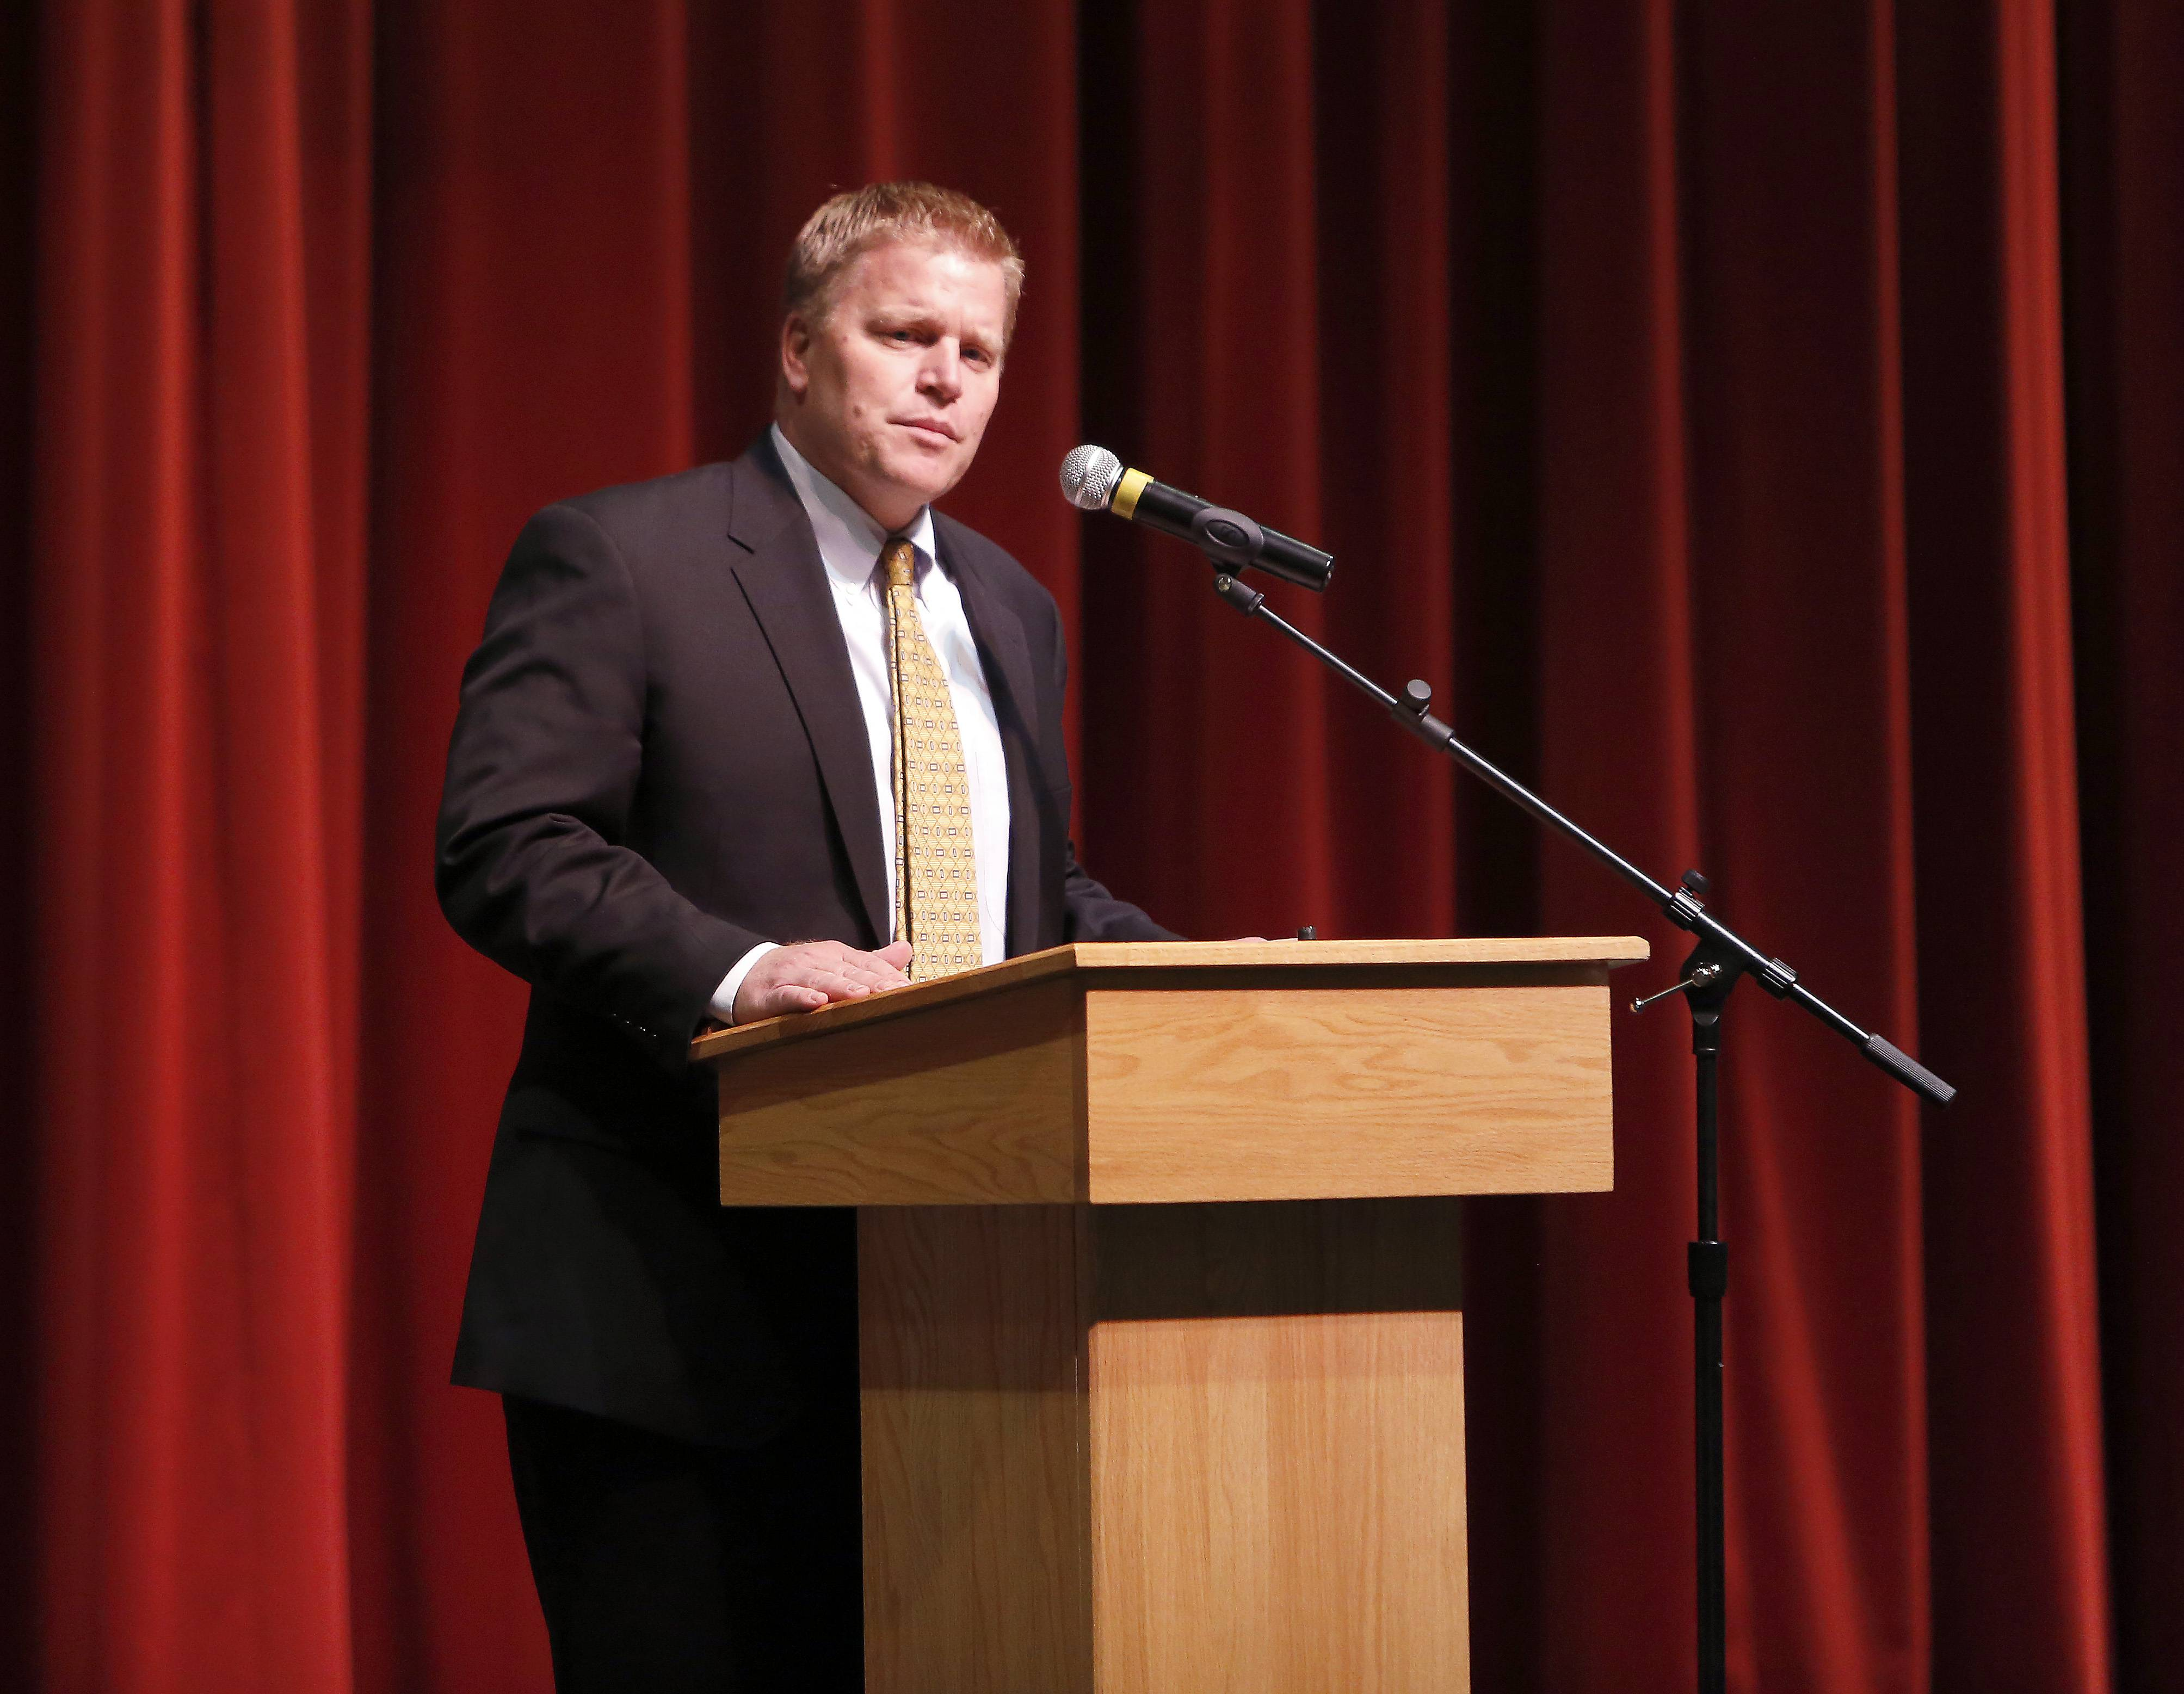 Kaneland District 302 Superintendent Jeff Schuler addresses the crowd at a ceremony Thursday where Kaneland High School received a state Academic Improvement Award.